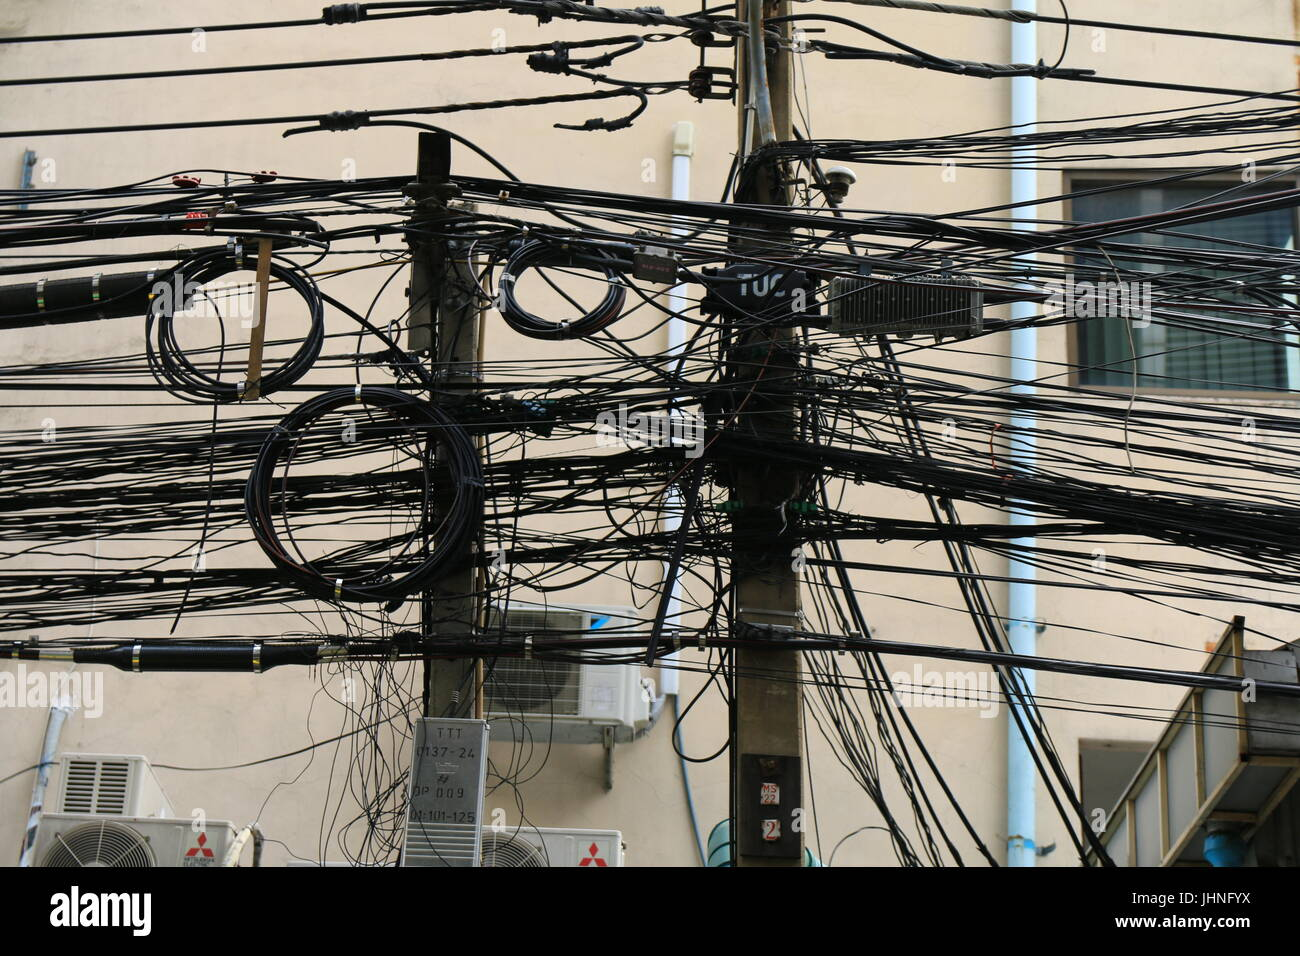 Dodgy Wiring Stock Photos Images Alamy Electrical Is This 2 Way Light Switch Wired Dangerously Home Bangkok Koh San Road Image